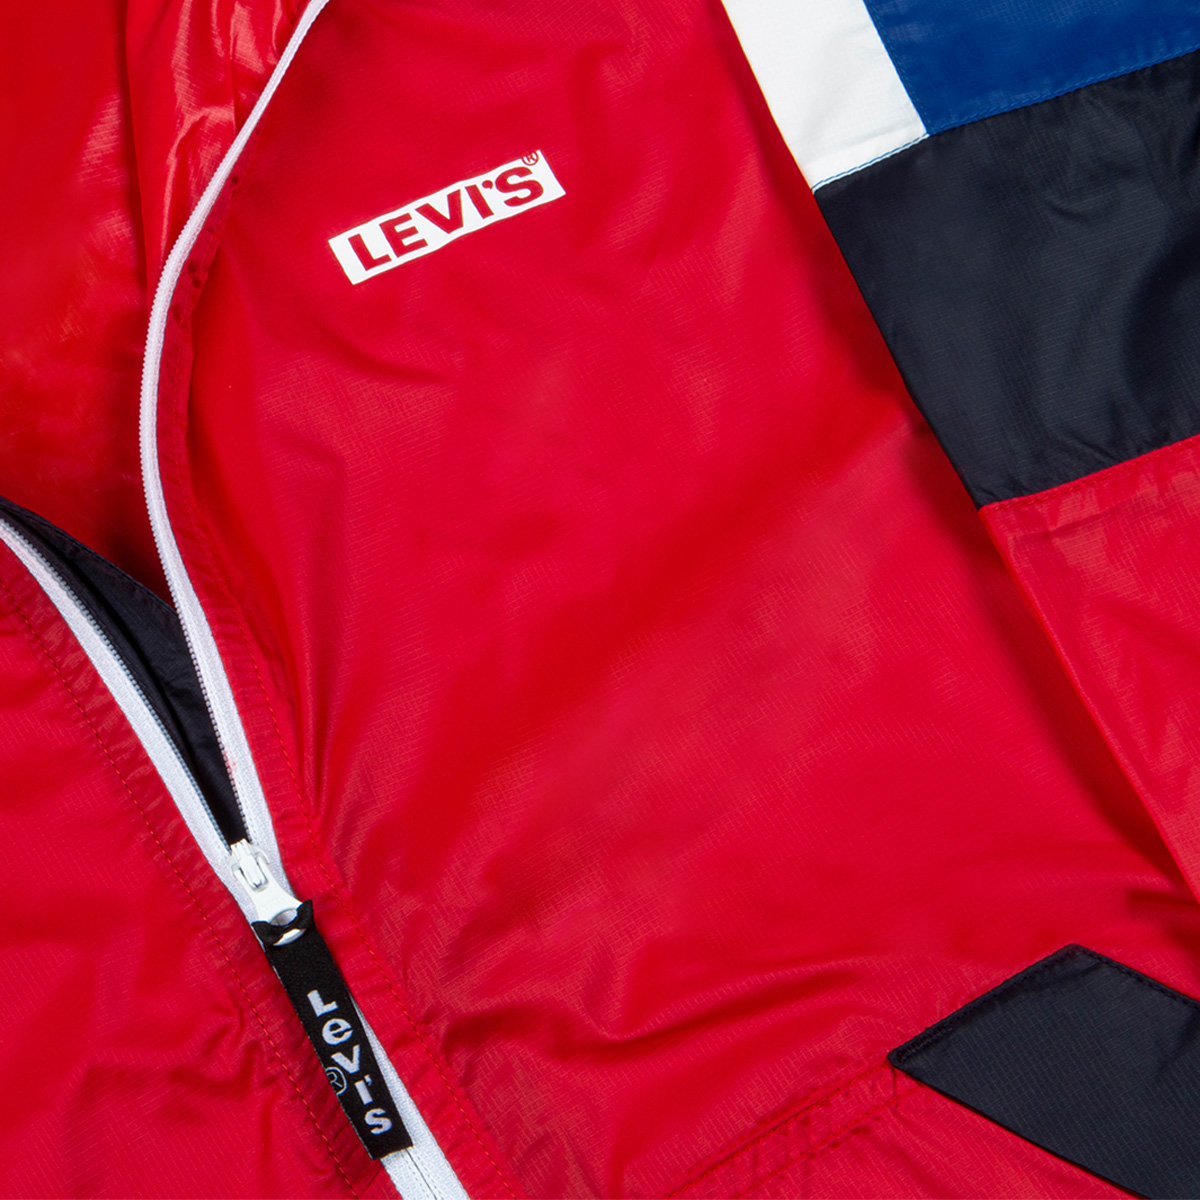 A bright red Levis' tracksuit top folded up neatly.